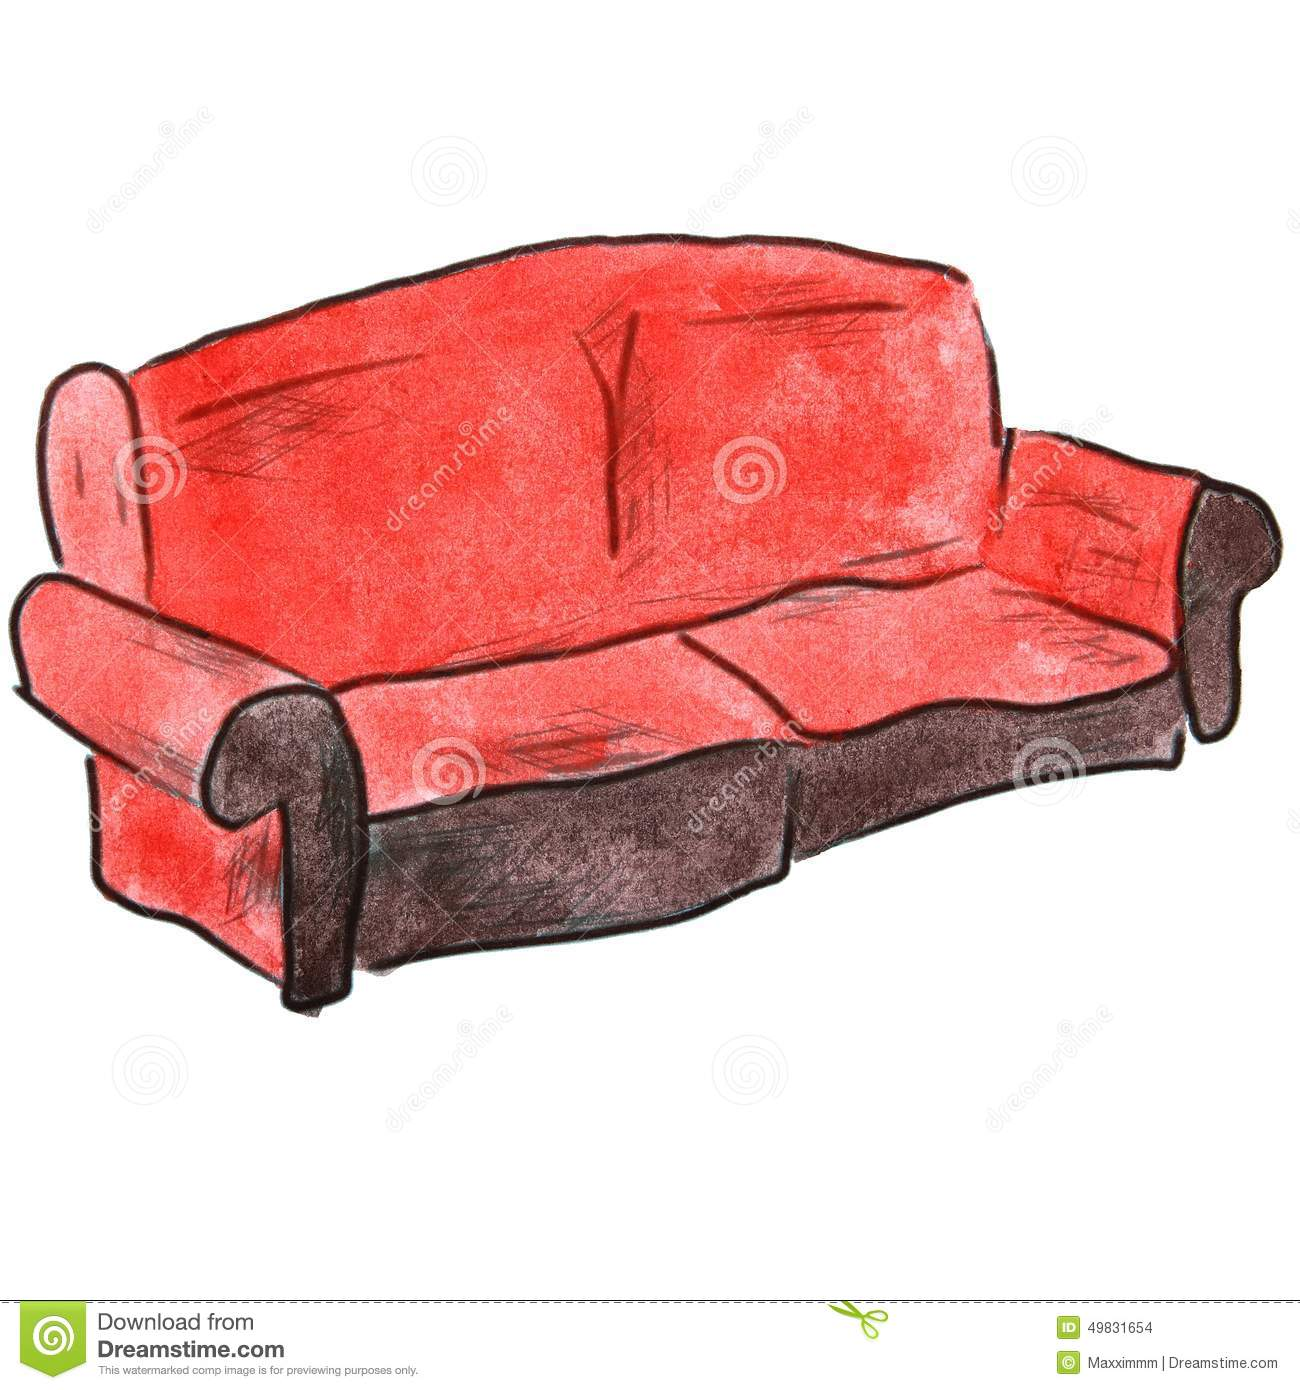 Luxury Red Couch for Sale